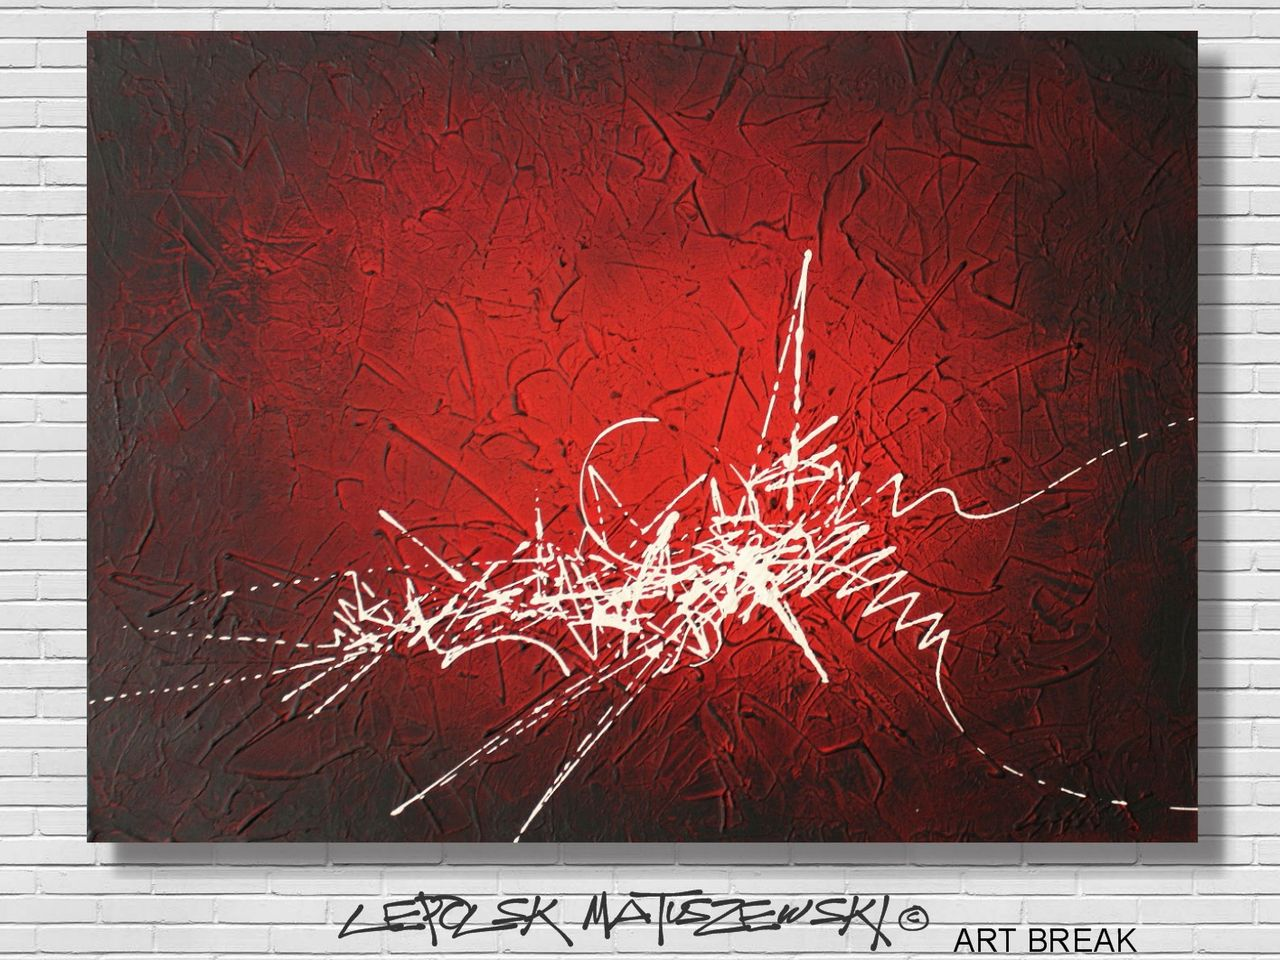 MISTER K  (Lepolsk Matuszewski) ART BREAK by Lepolsk abstract art expressionnism  2016